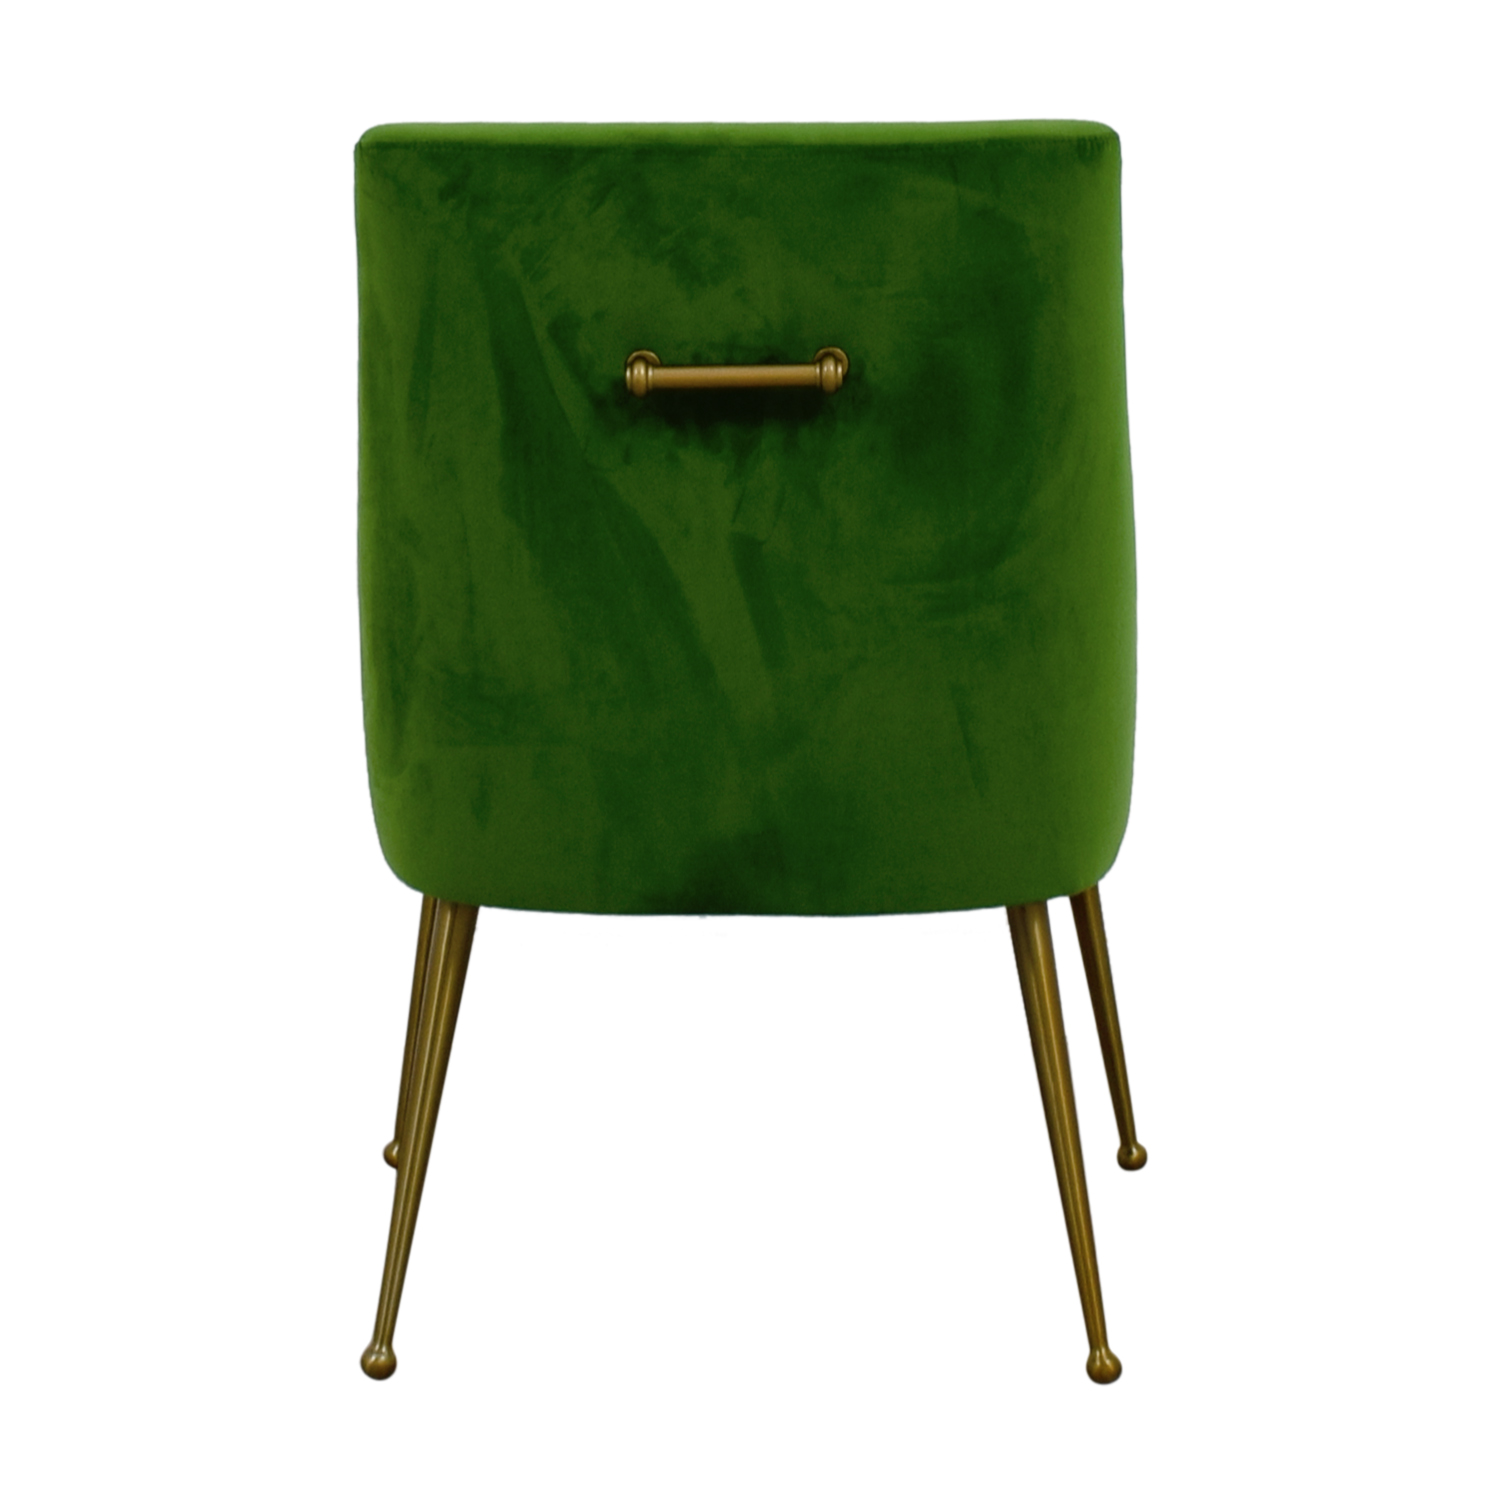 Tov Tov Green Velvet Accent Chair used